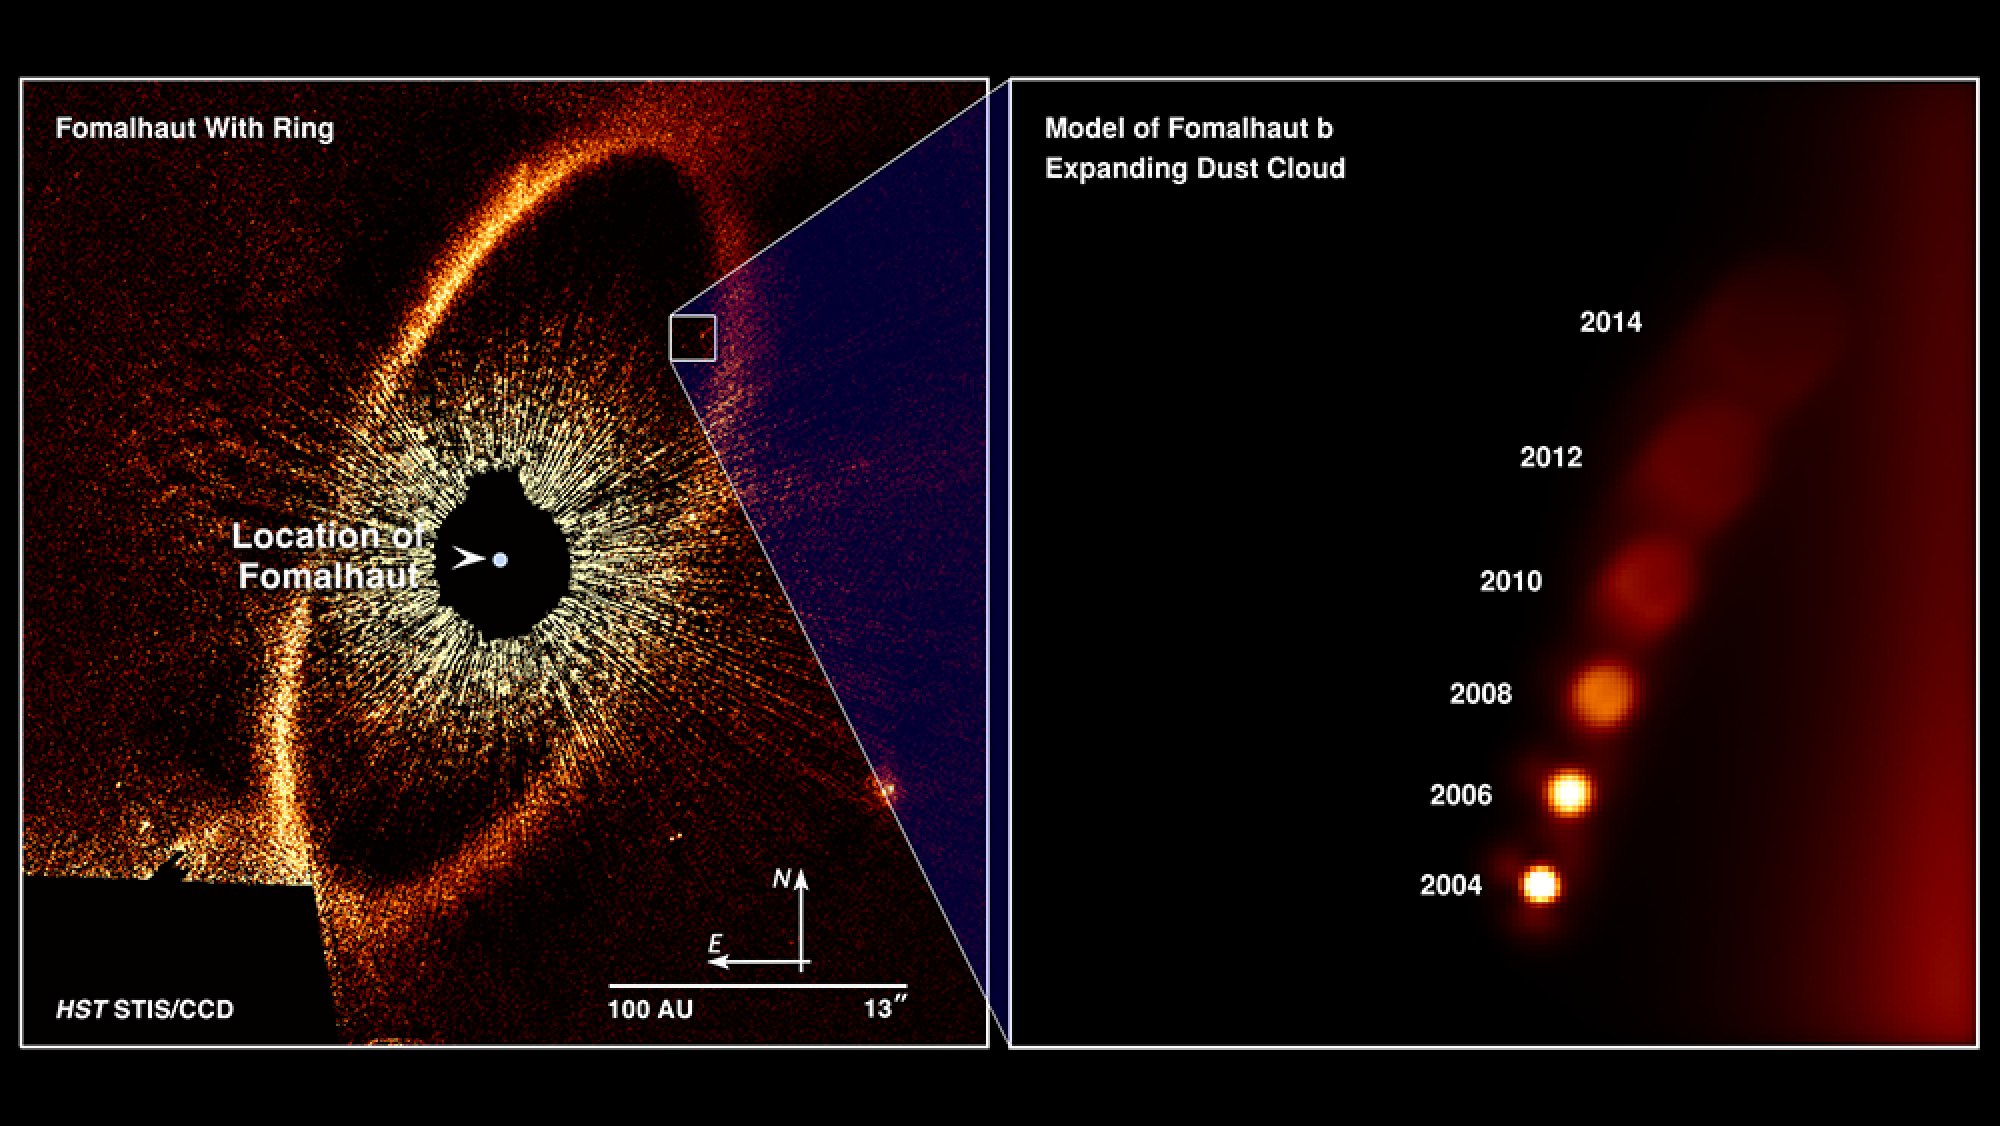 Hubble imaged a vast ring of icy debris encircling the star Fomalhaut. Shown on the right are computer simulations of the expanding and fading cloud. The cloud of very fine dust particles is estimated to stretch more than 200 million miles across.